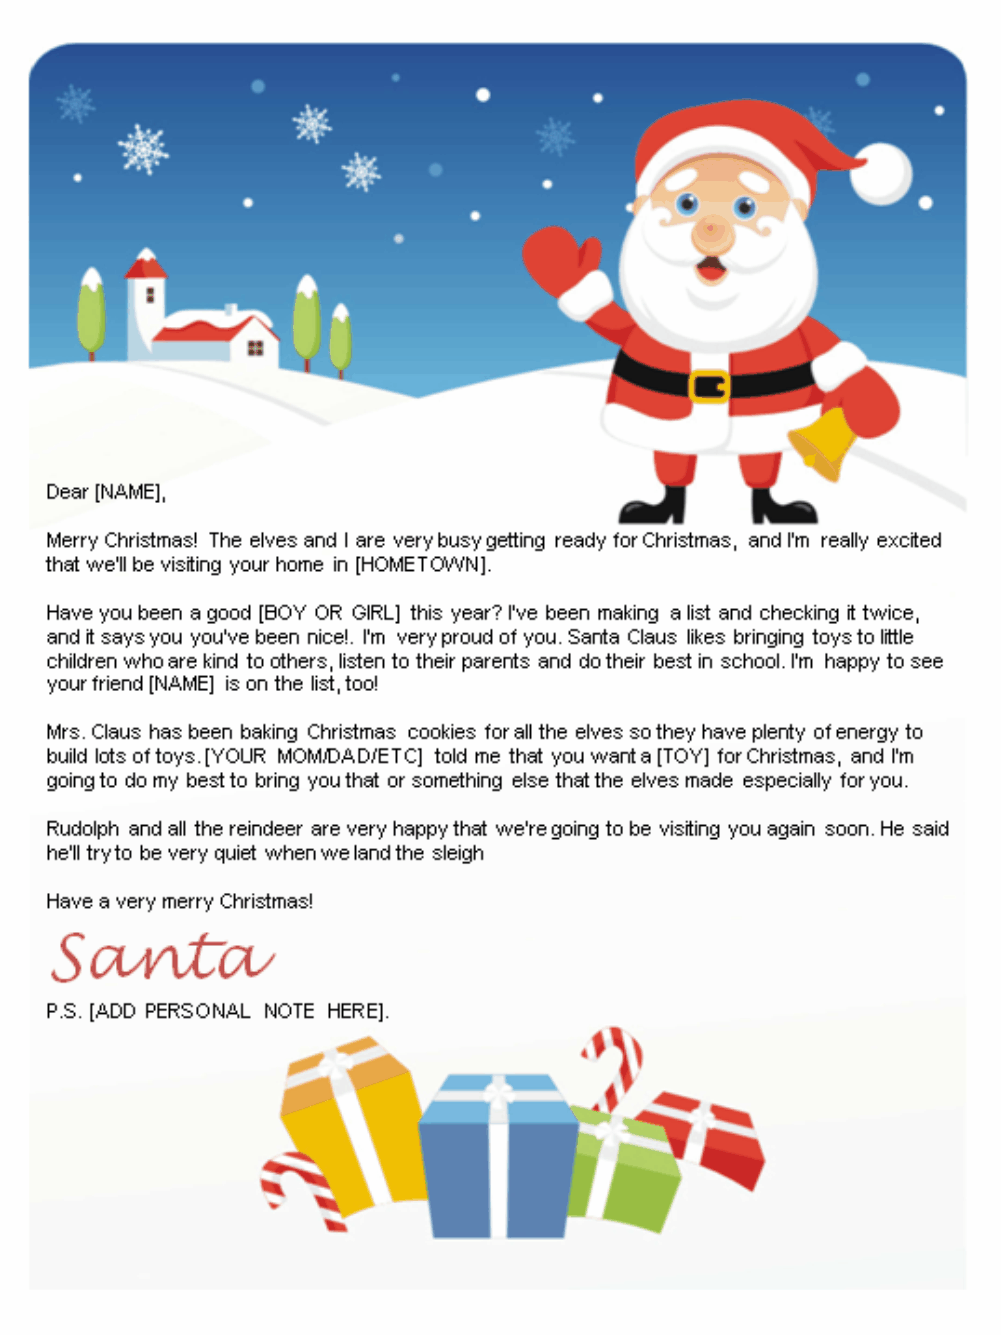 Free Printable Santa Letters For Christmas Morning | Kazure.top